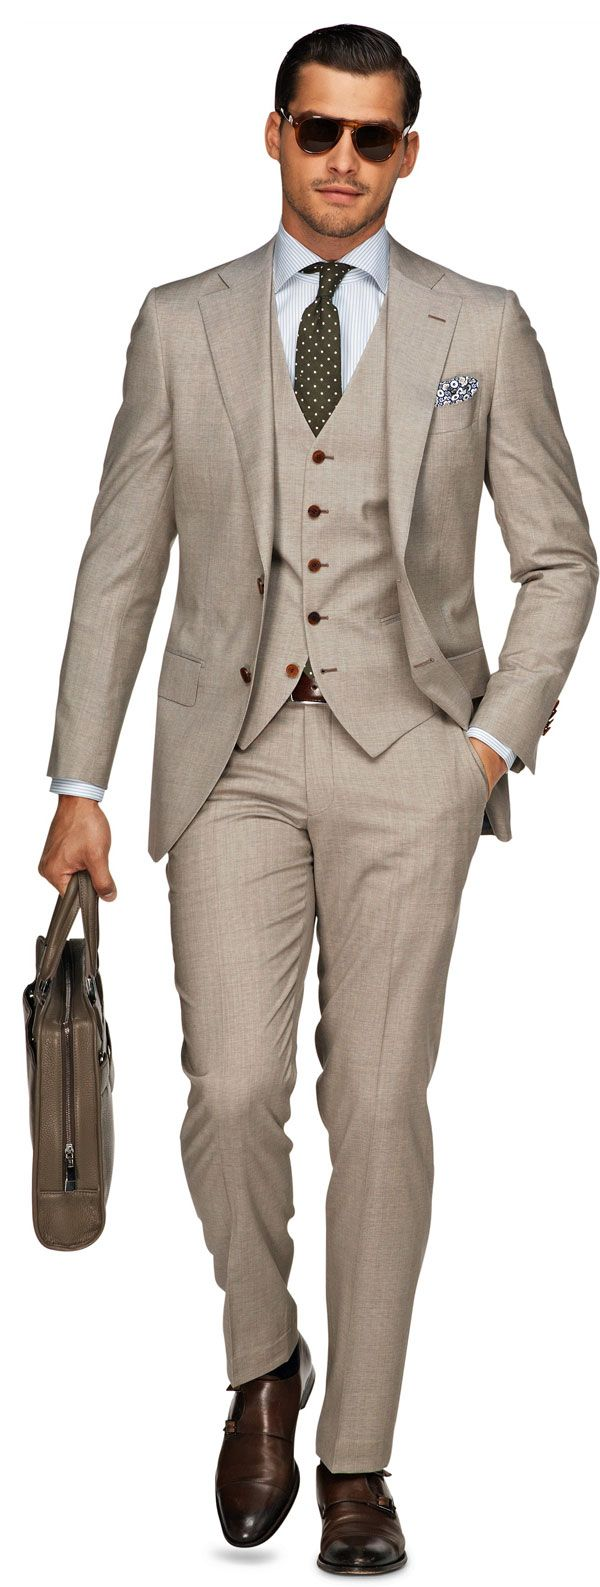 best fashion images on pinterest man style stylish man and